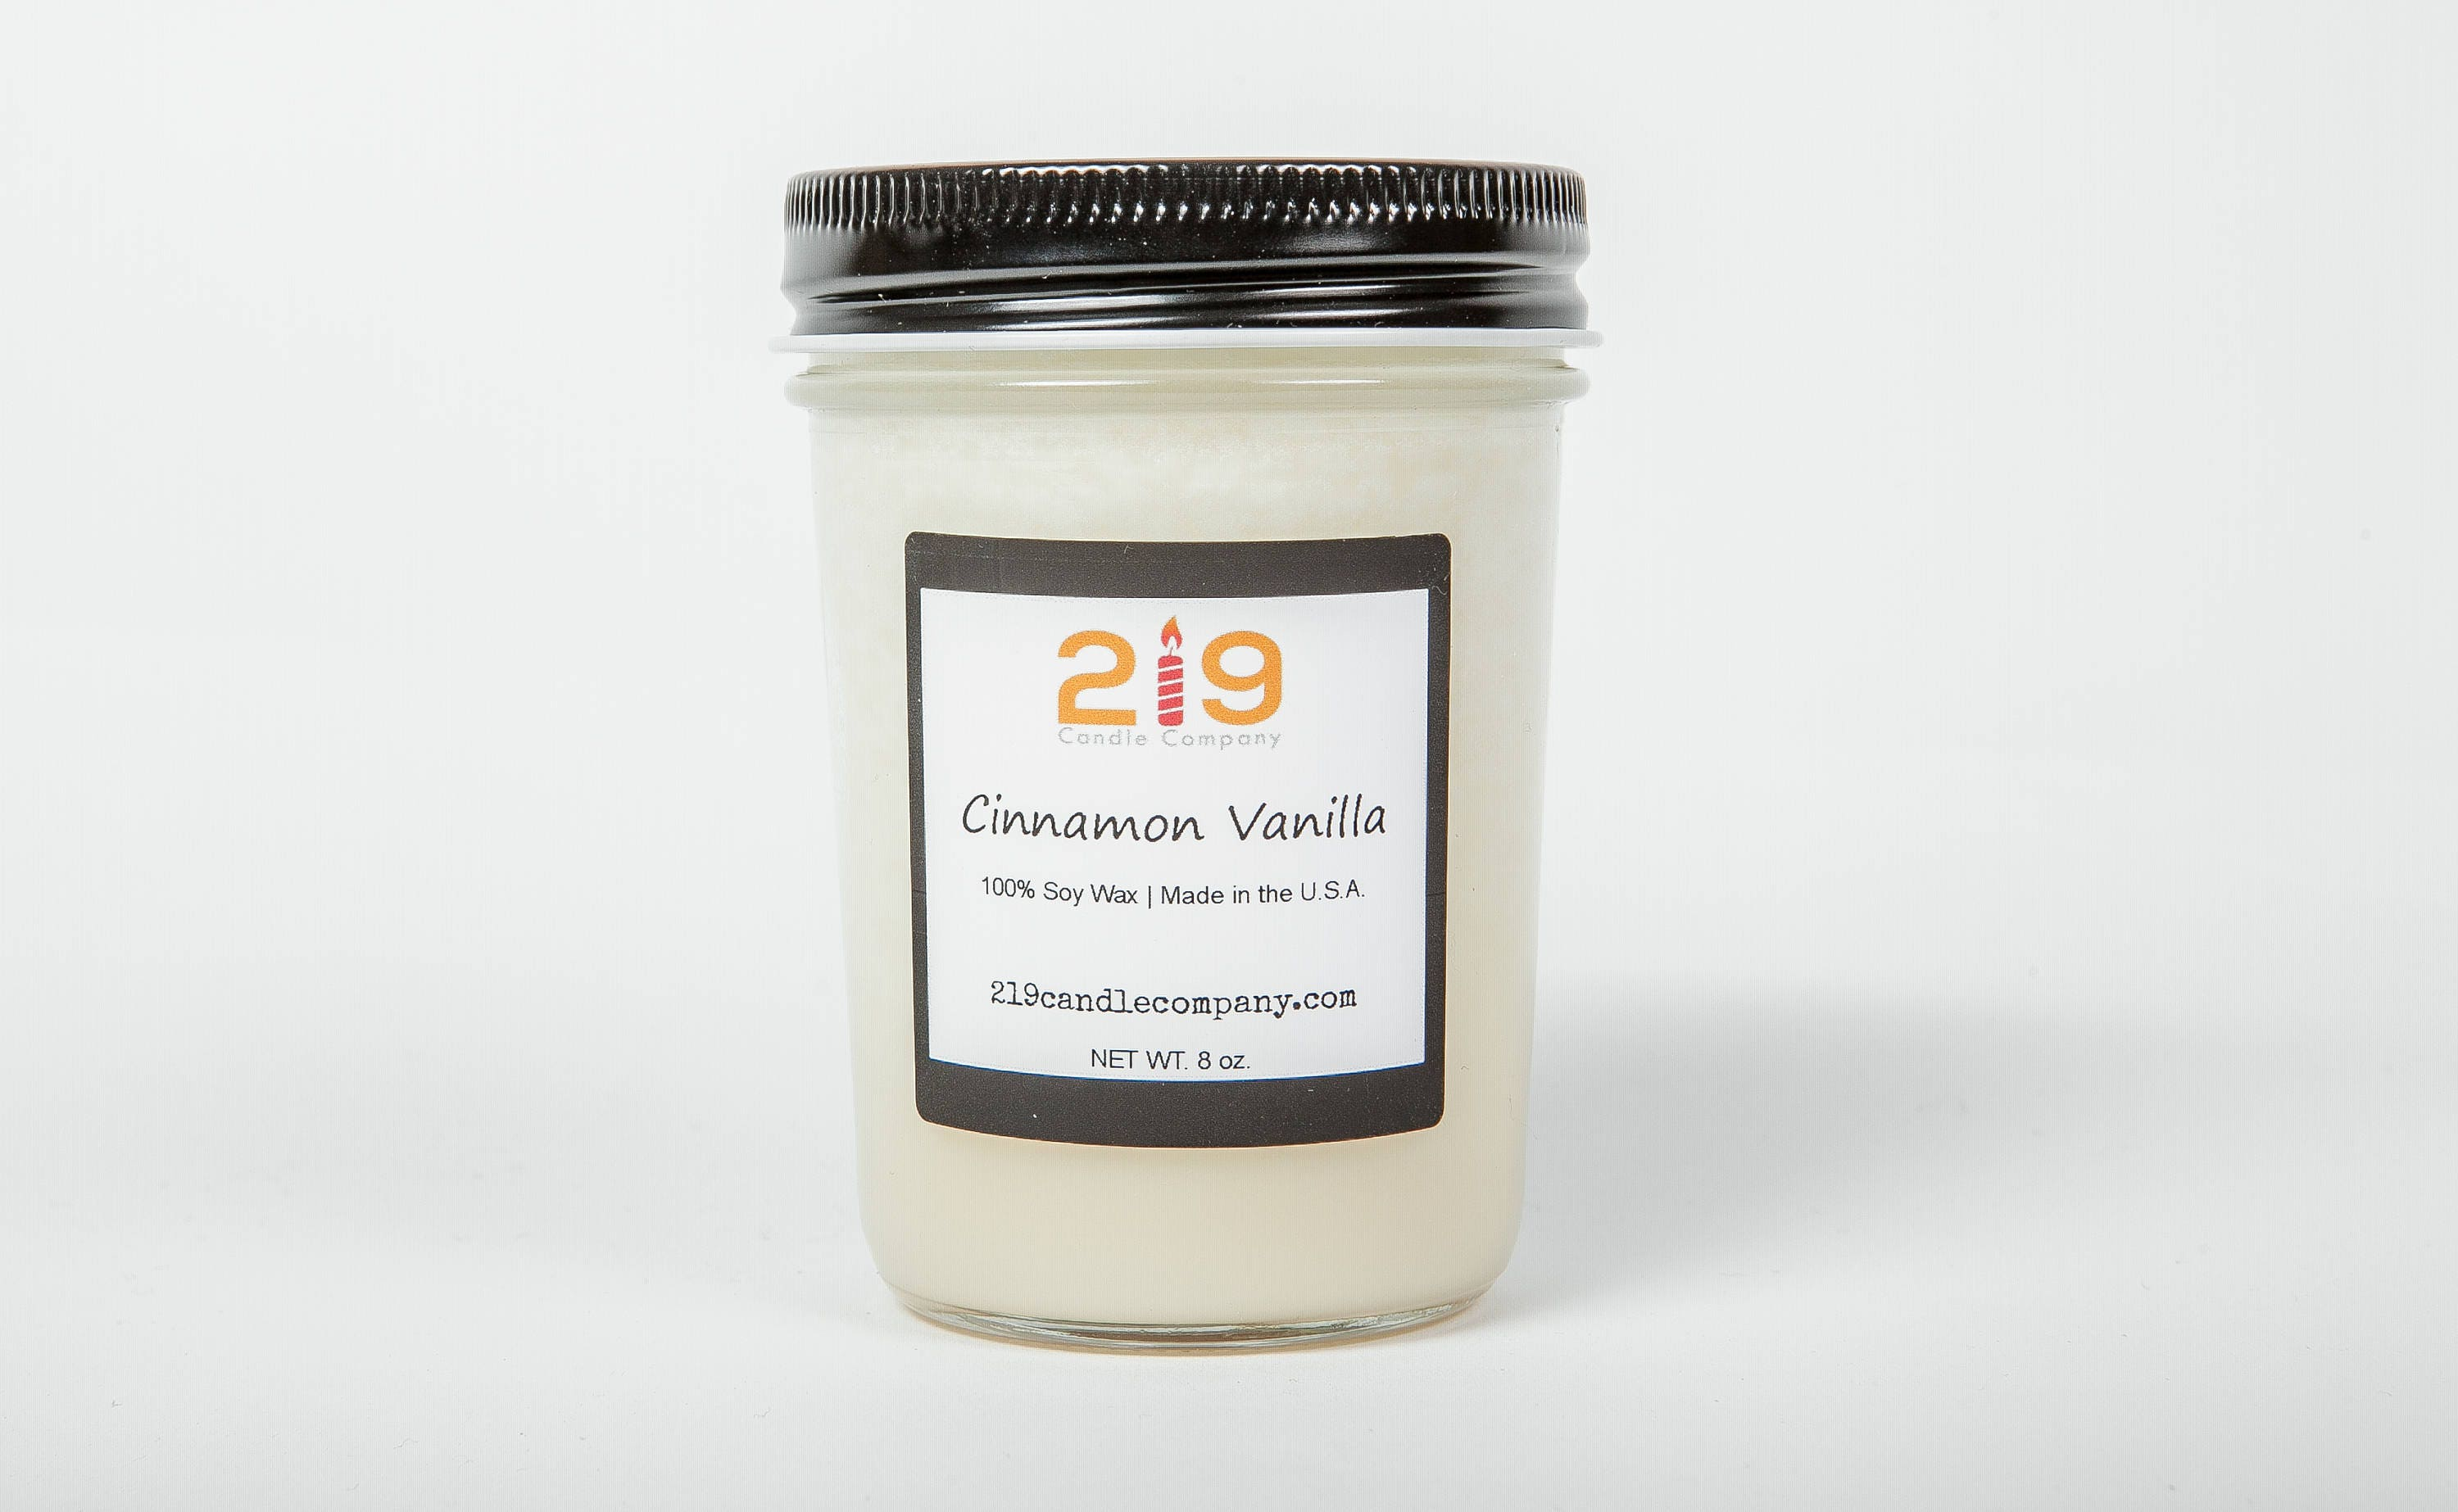 Cinnamon Vanilla Candle Soy Etsy Natural Wax Scented Candles